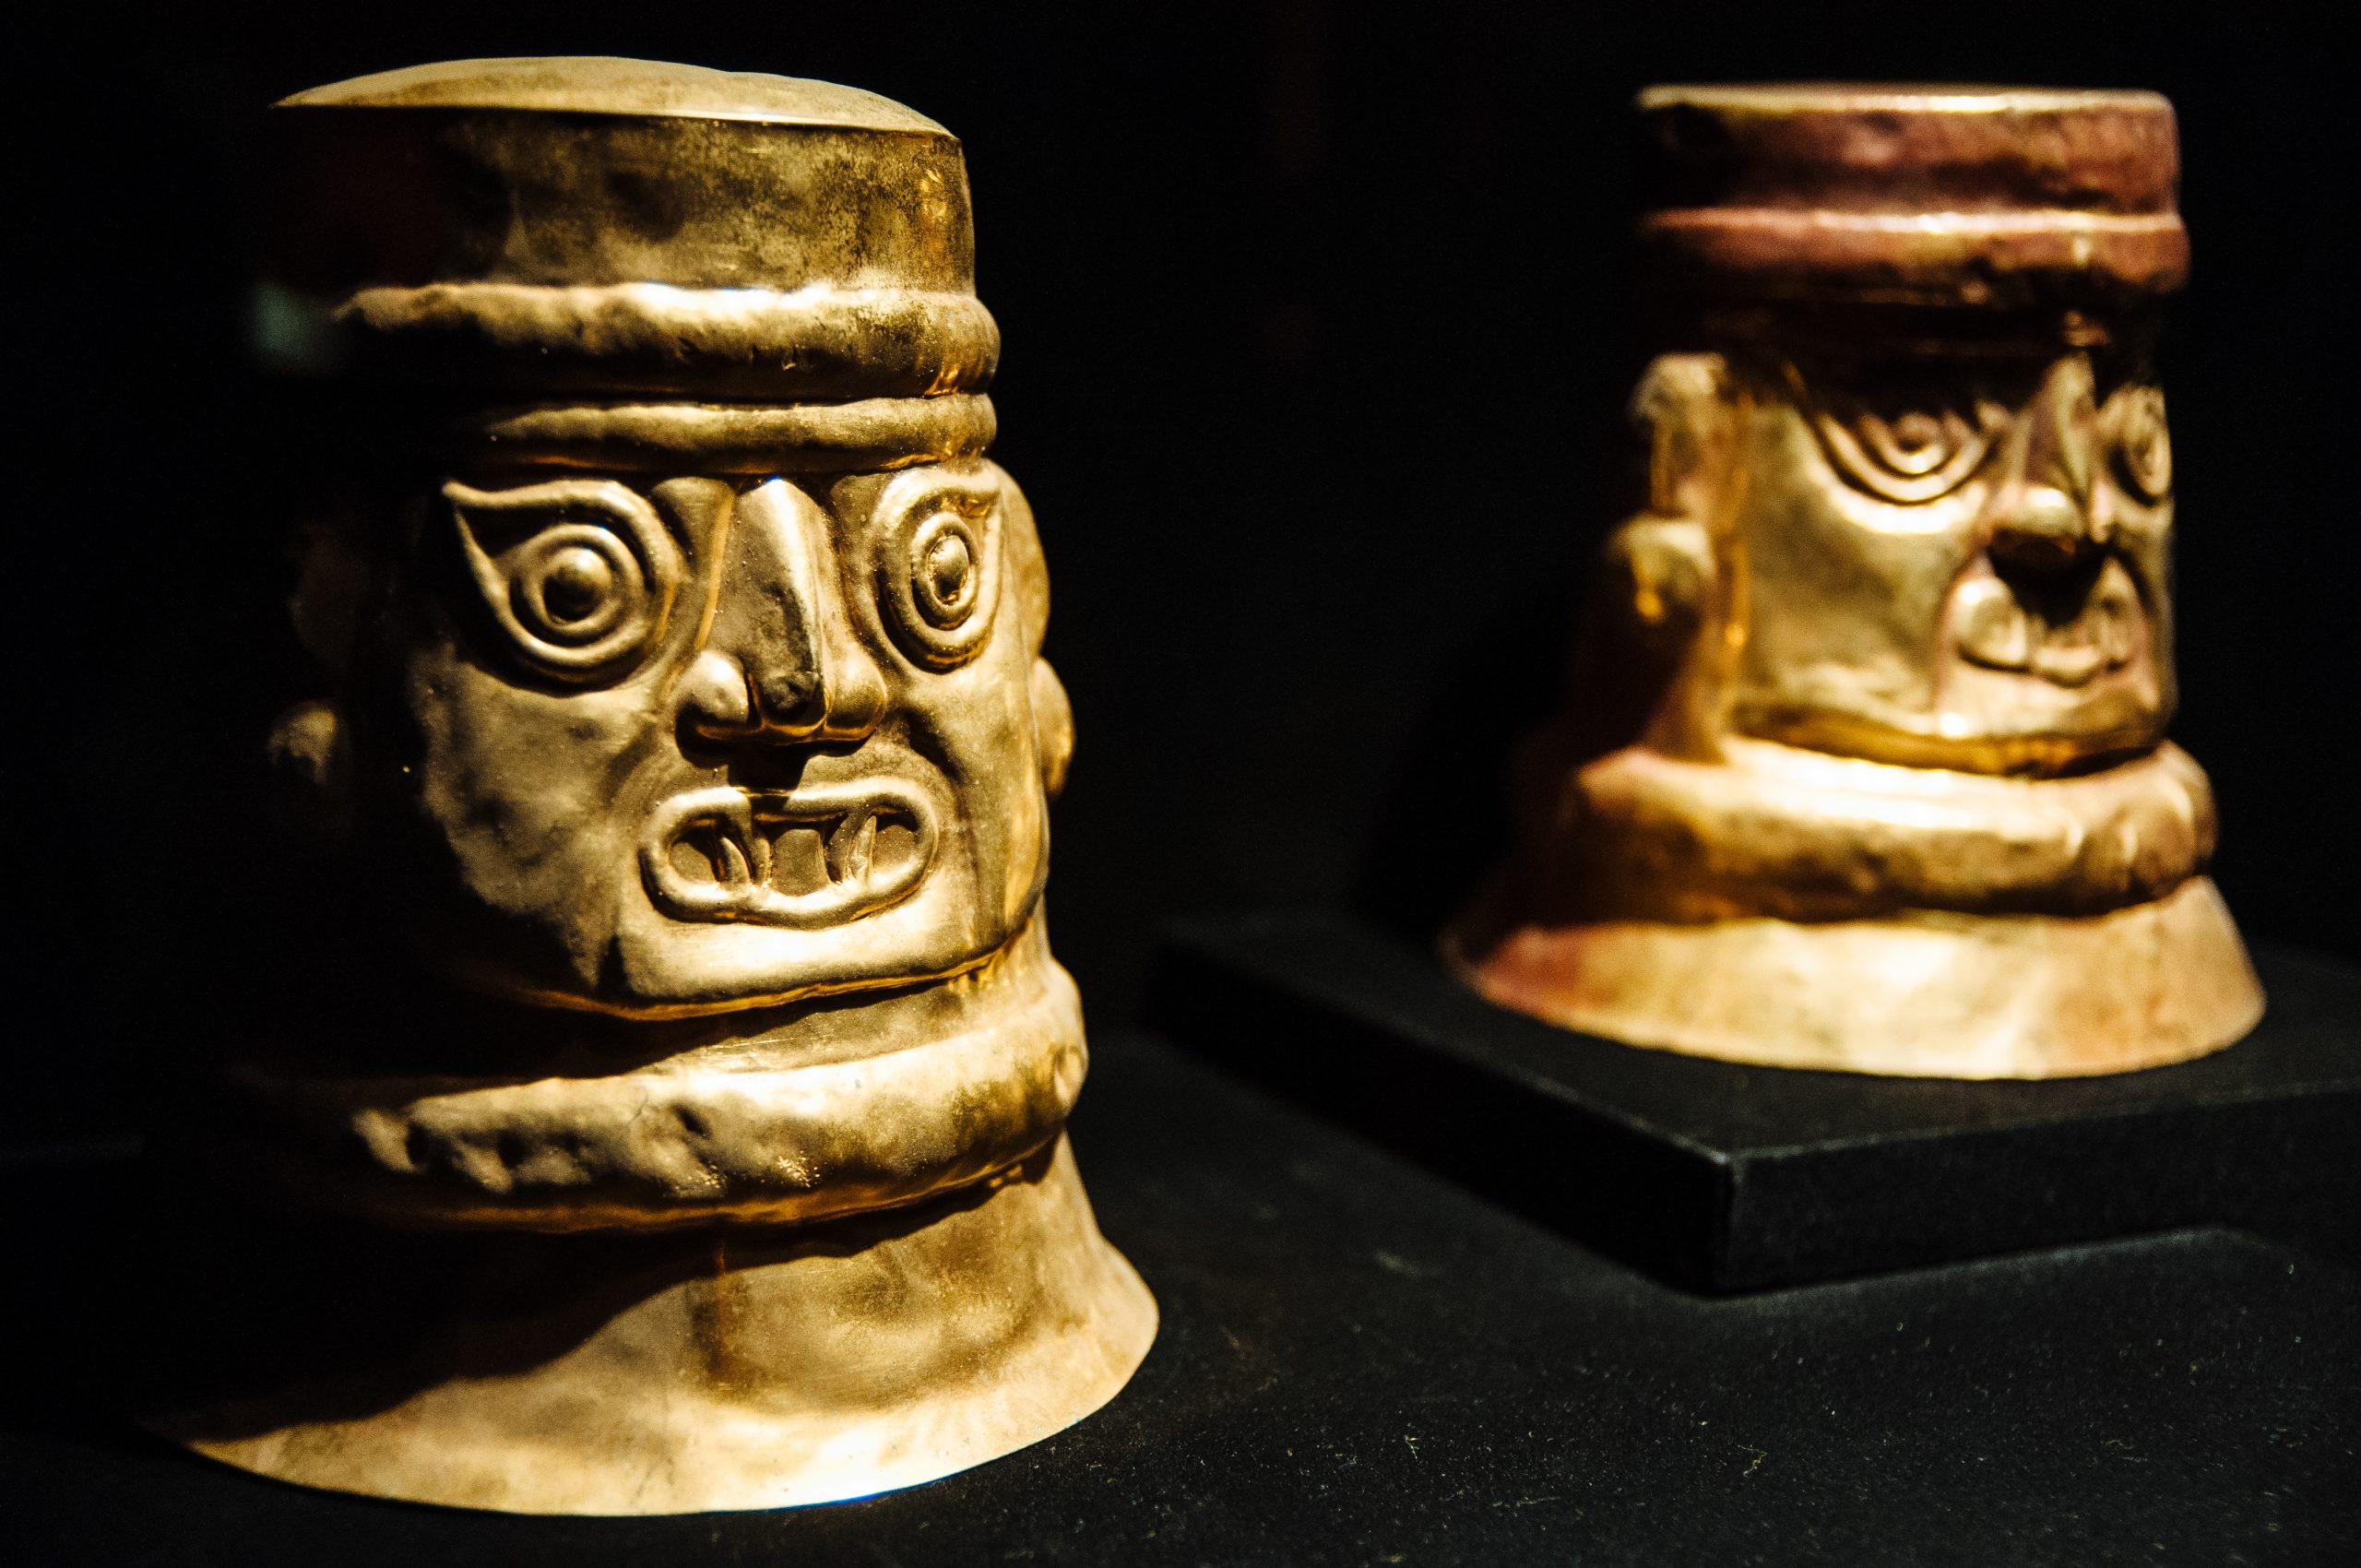 Artifacts on display at the Larco Museum in Lima, Peru